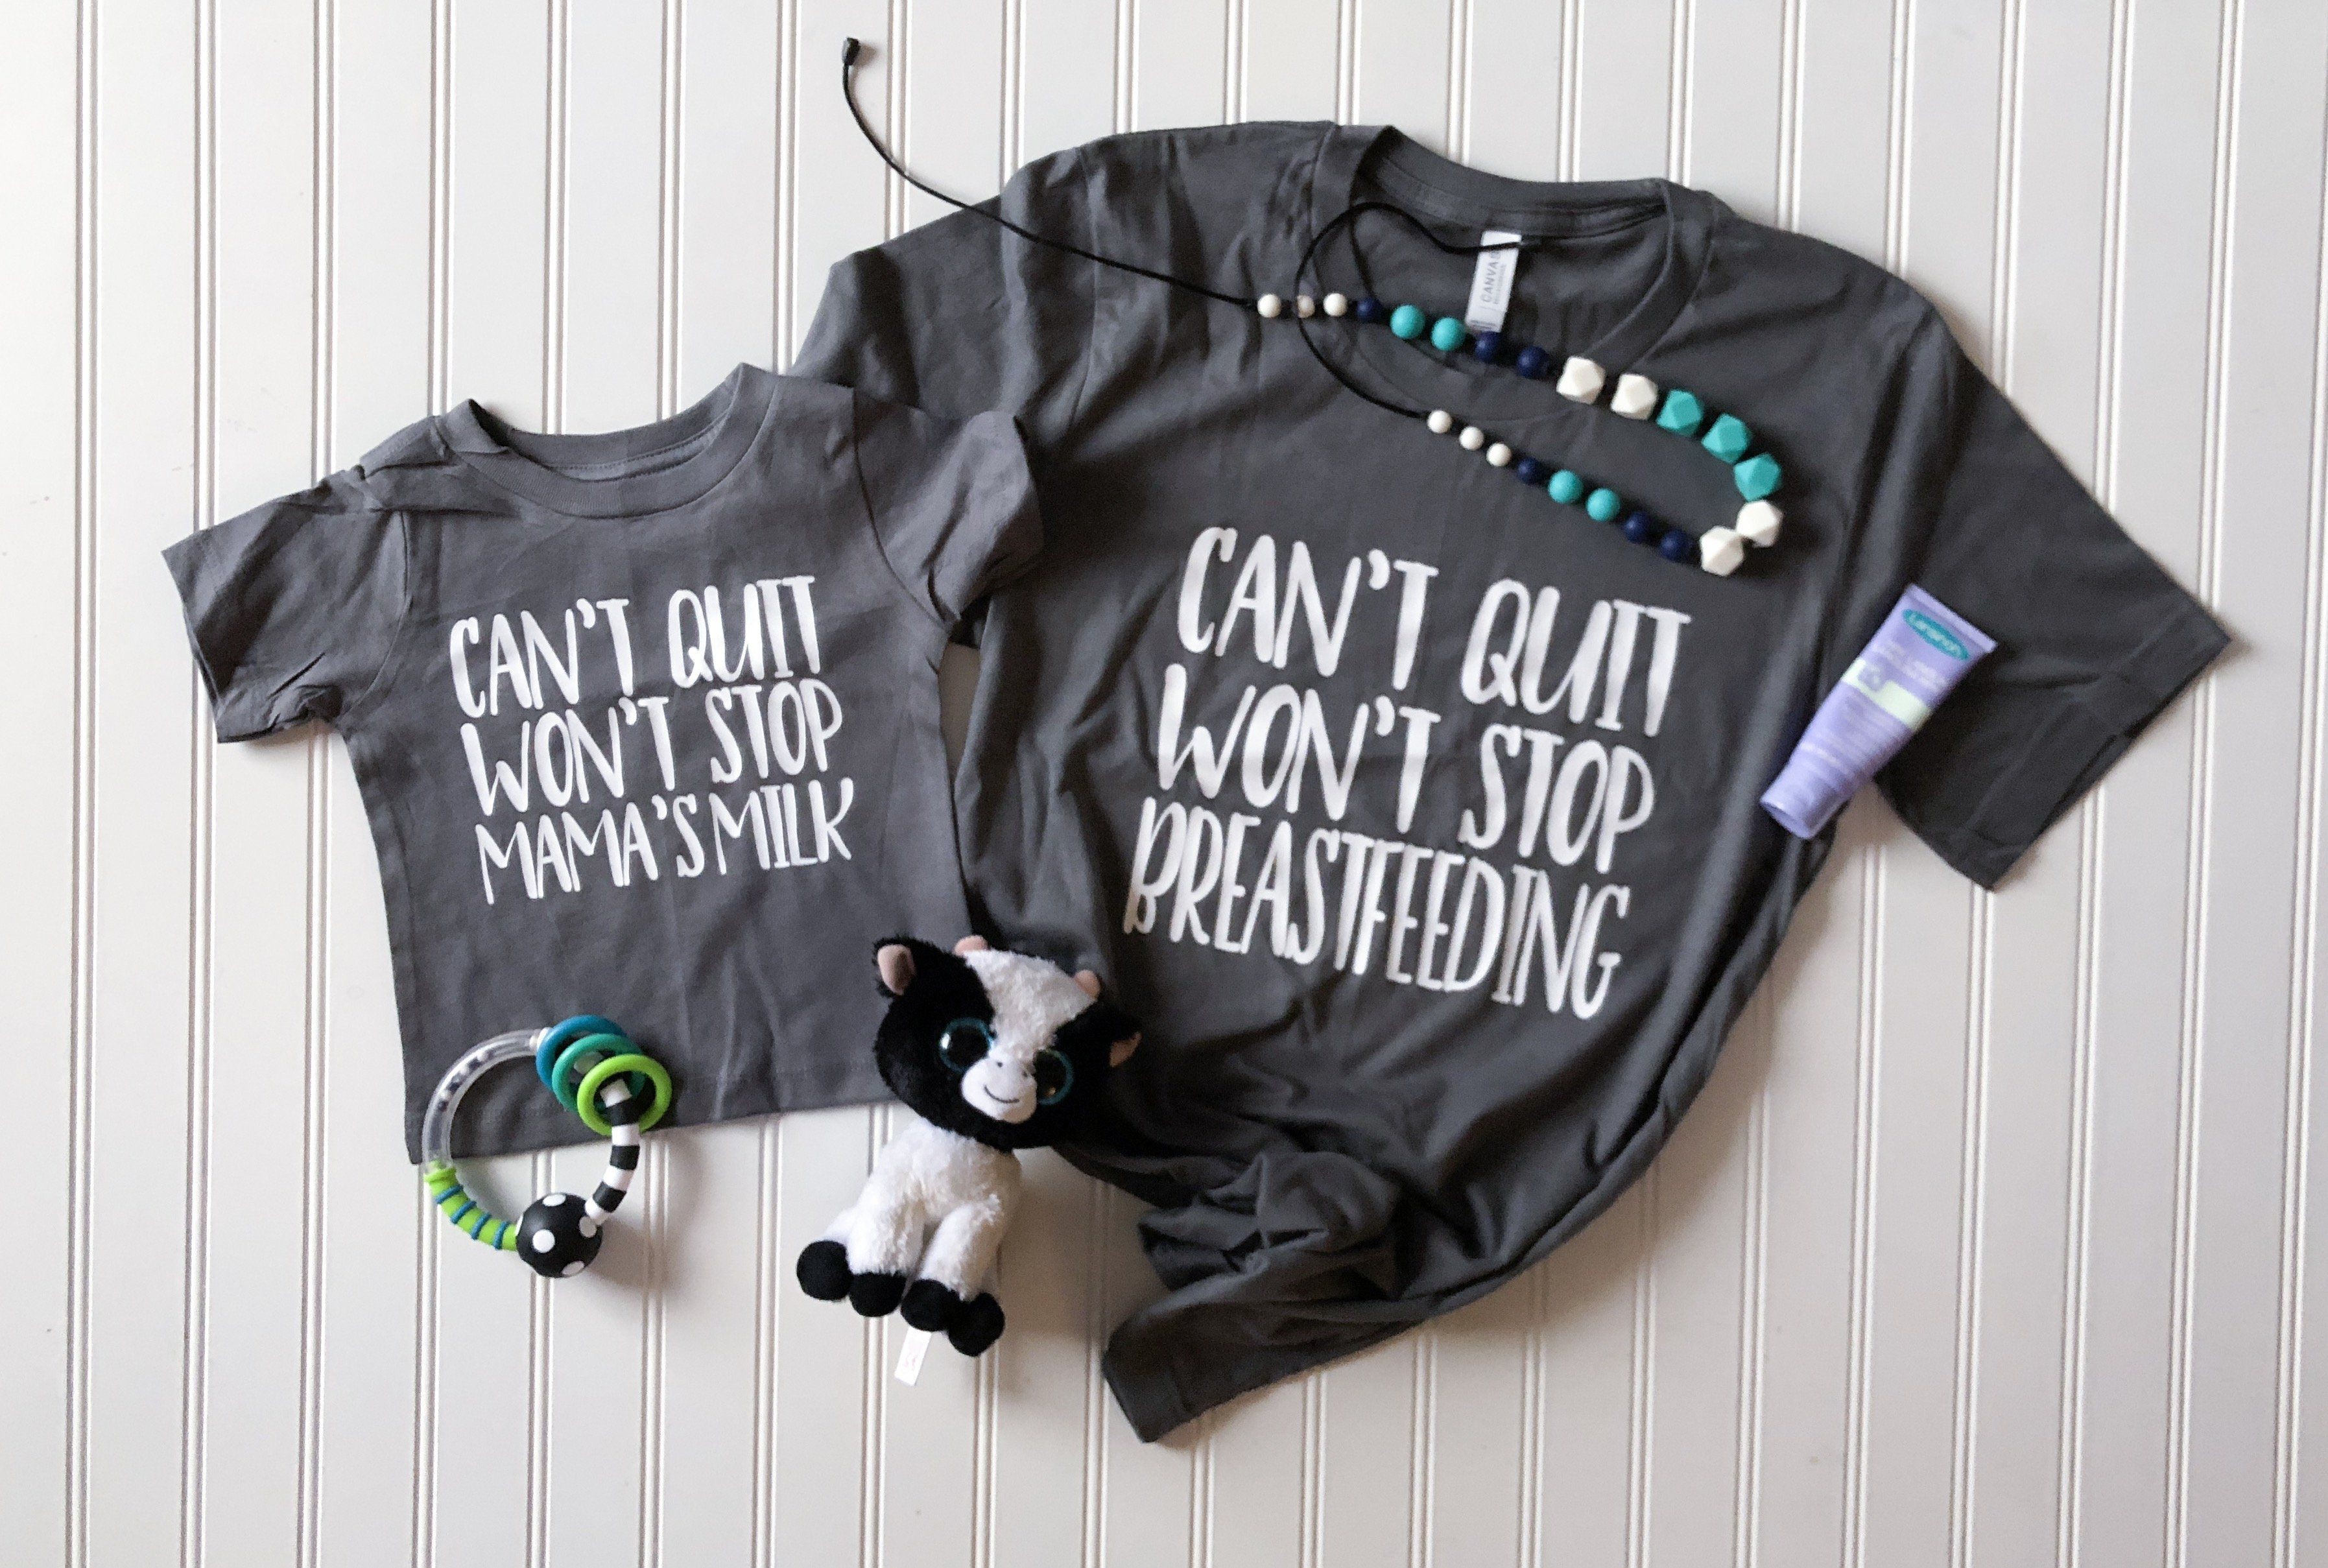 Can't Quit Won't Stop Breastfeeding (Adult Tee) | Adult ...